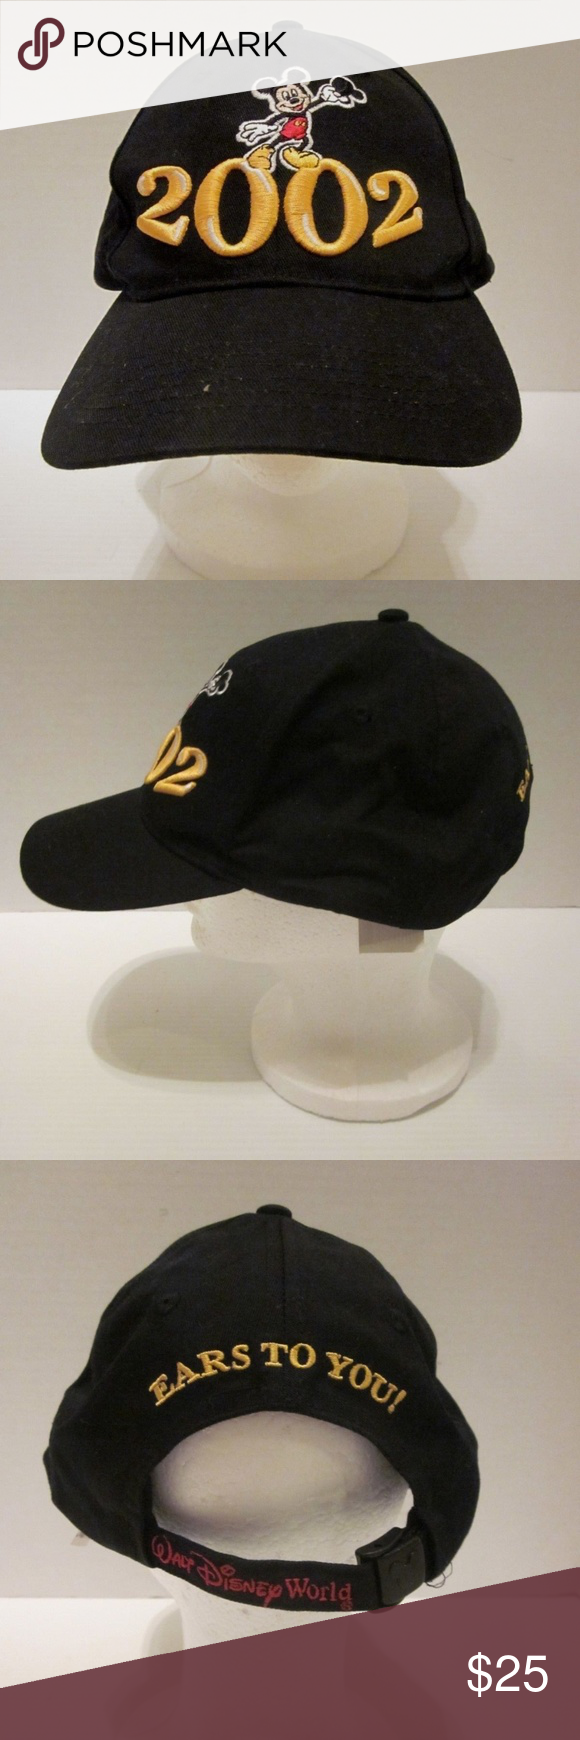 185db149a11a77 New Walt Disney World Ears to You 2002 Hat Cap For sale is a Walt Disney  World 2002 Ears to You black baseball cap in adult adjustable size.